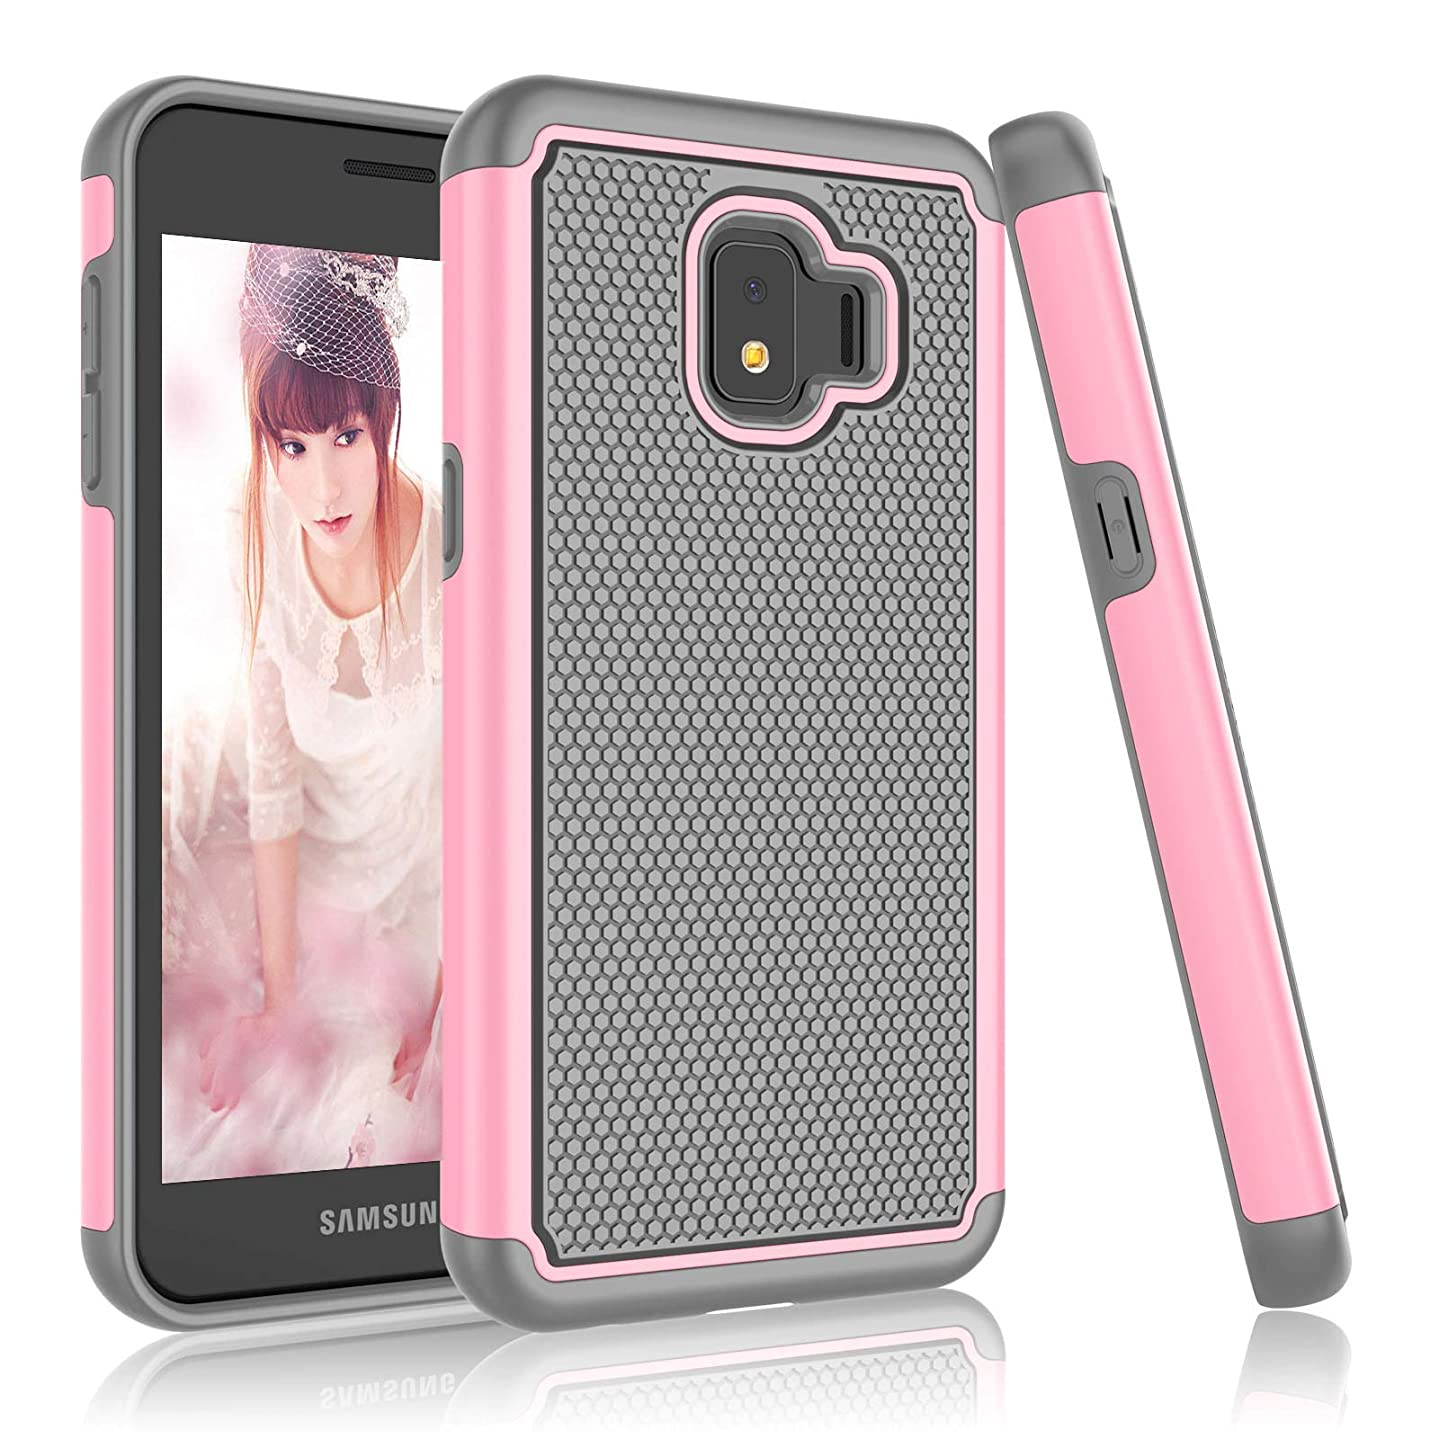 Njjex Galaxy J2 Core Case, for Galaxy J2 Dash / J2 Pure Case, [Nveins] Hybrid Dual Layers Hard Back + Soft Silicone Rubber Armor Defender Shockproof Phone Cover for Samsung Galaxy J2 Core [Baby Pink] wev592522096